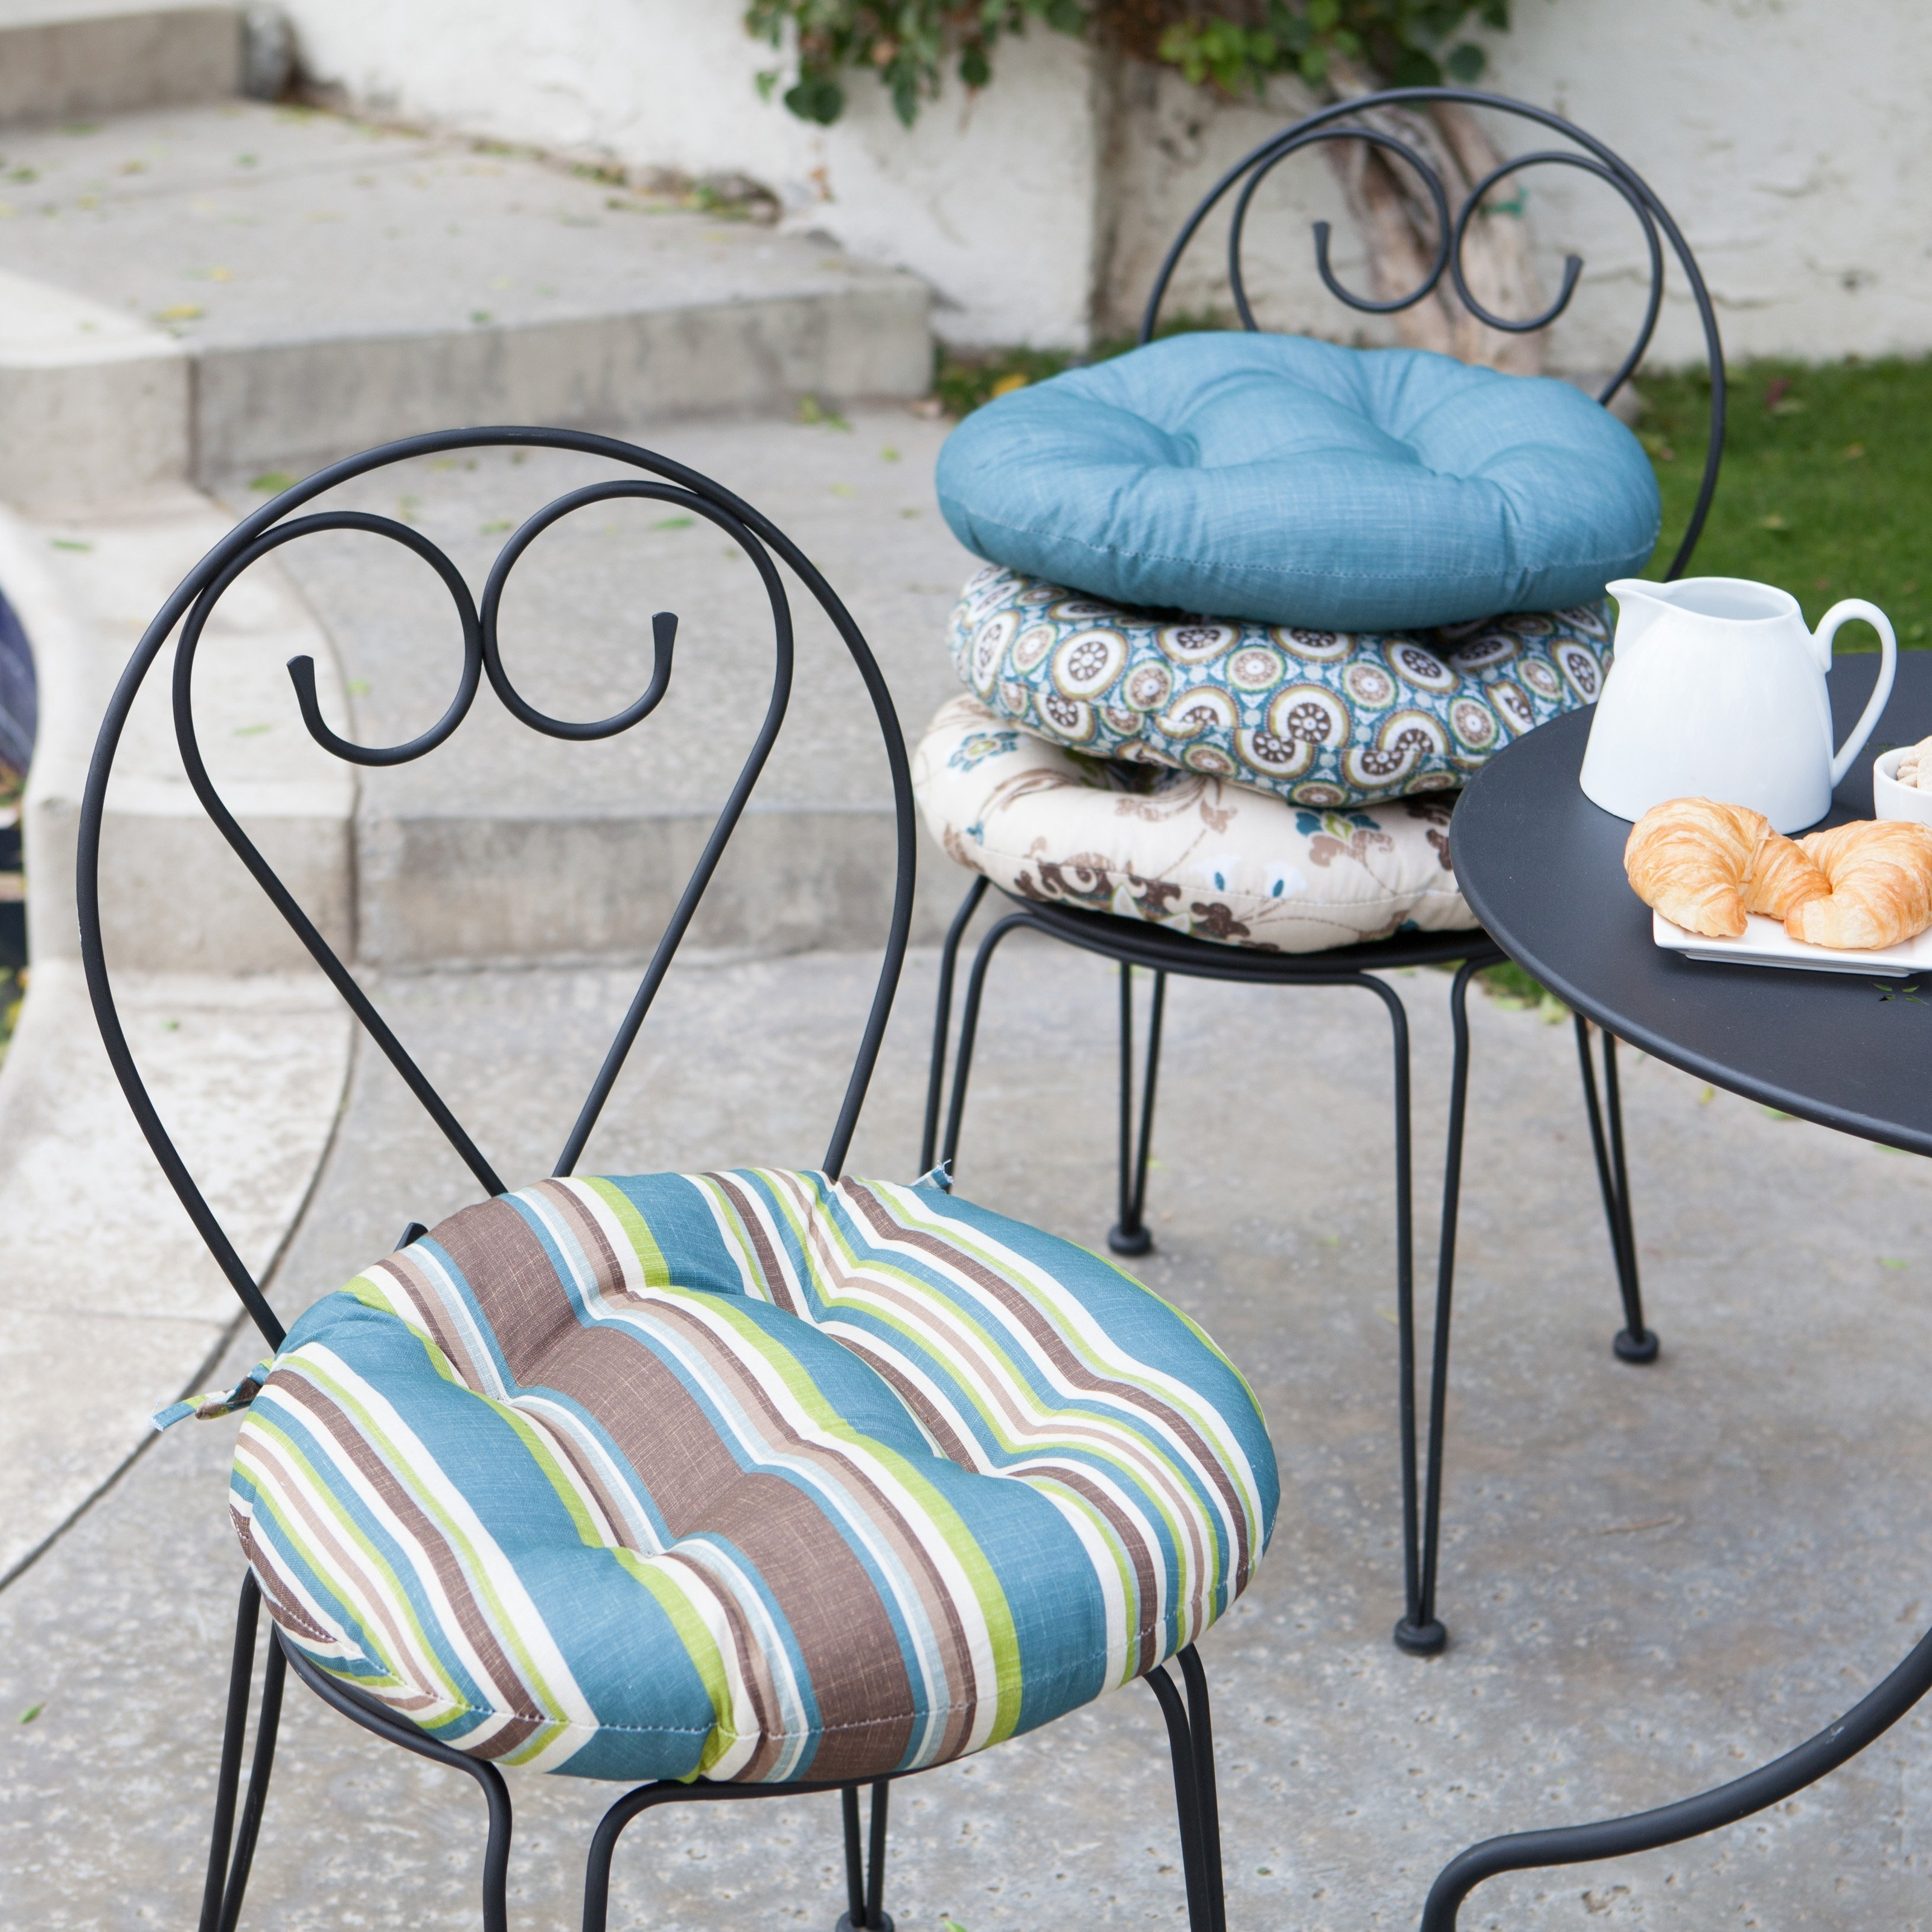 Image of: Round Bistro Chair Cushions Ideas Home Furniture Ideas Regarding Round Outdoor Cushion Diy Simple Round Outdoor Cushion